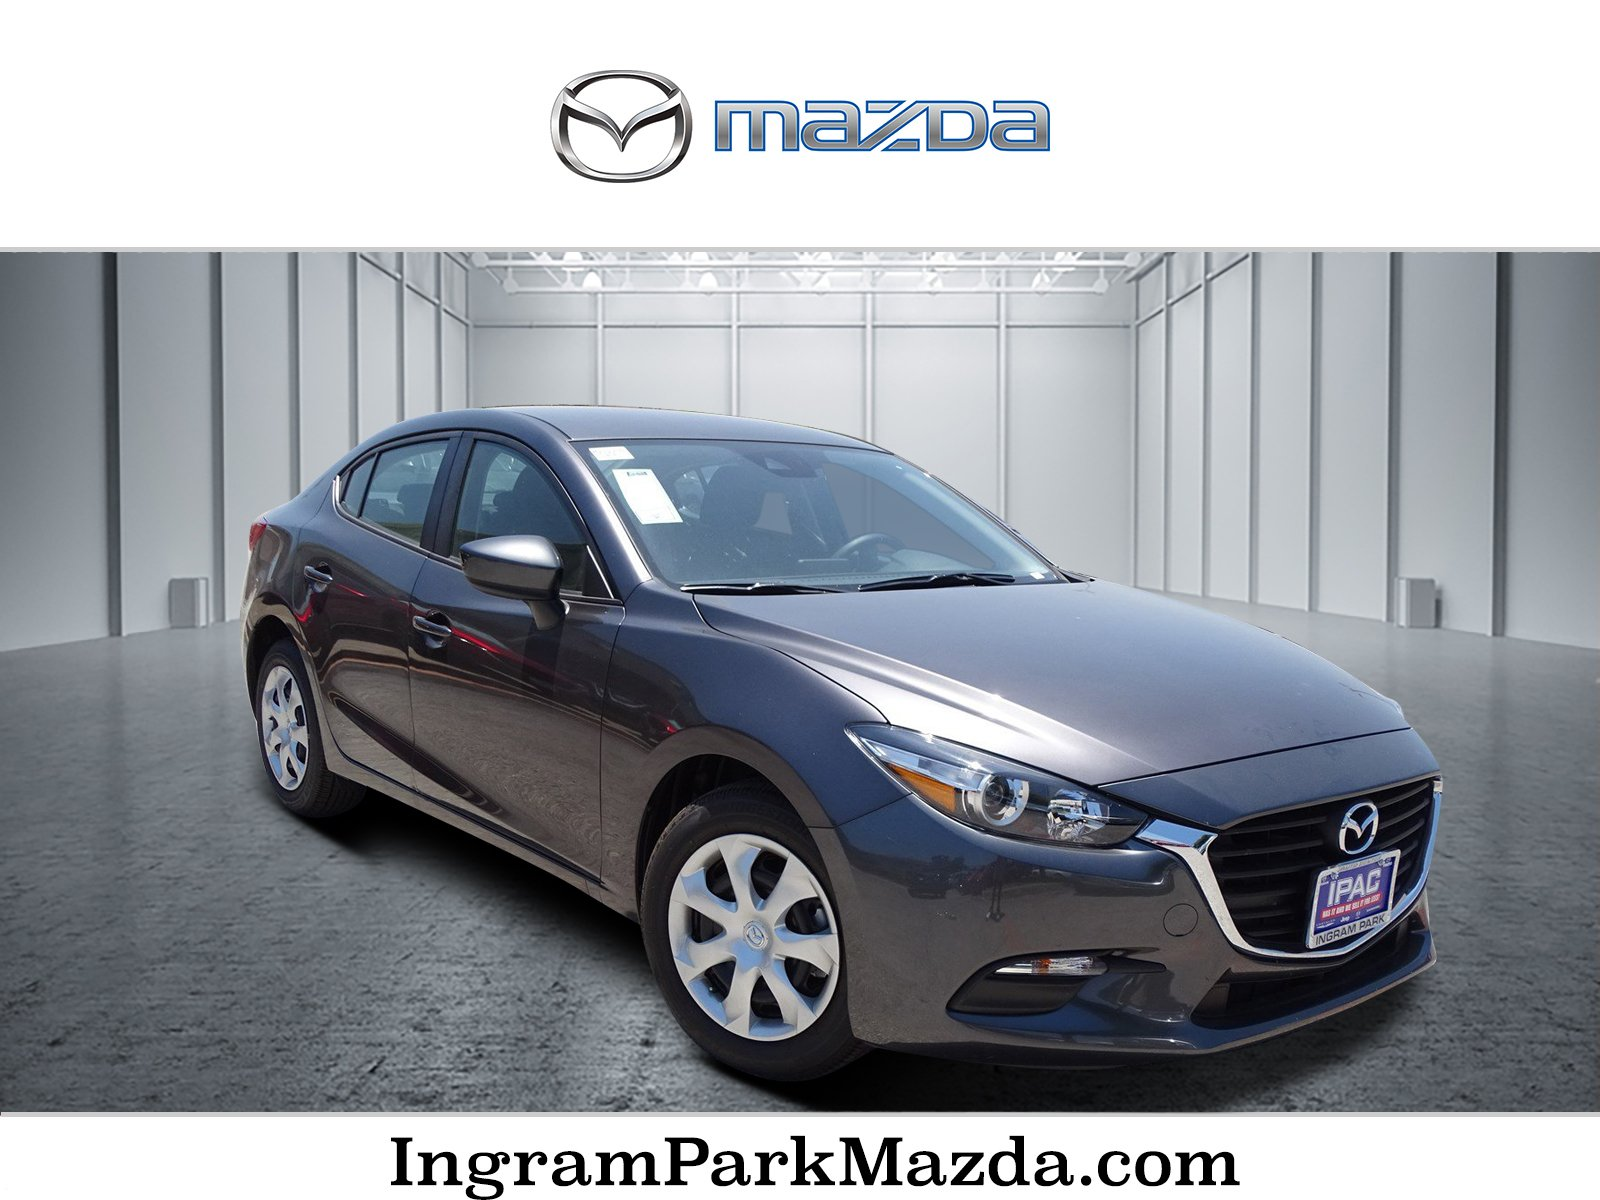 New 2018 Mazda Mazda3 4 Door Sport Sedan in San Antonio M